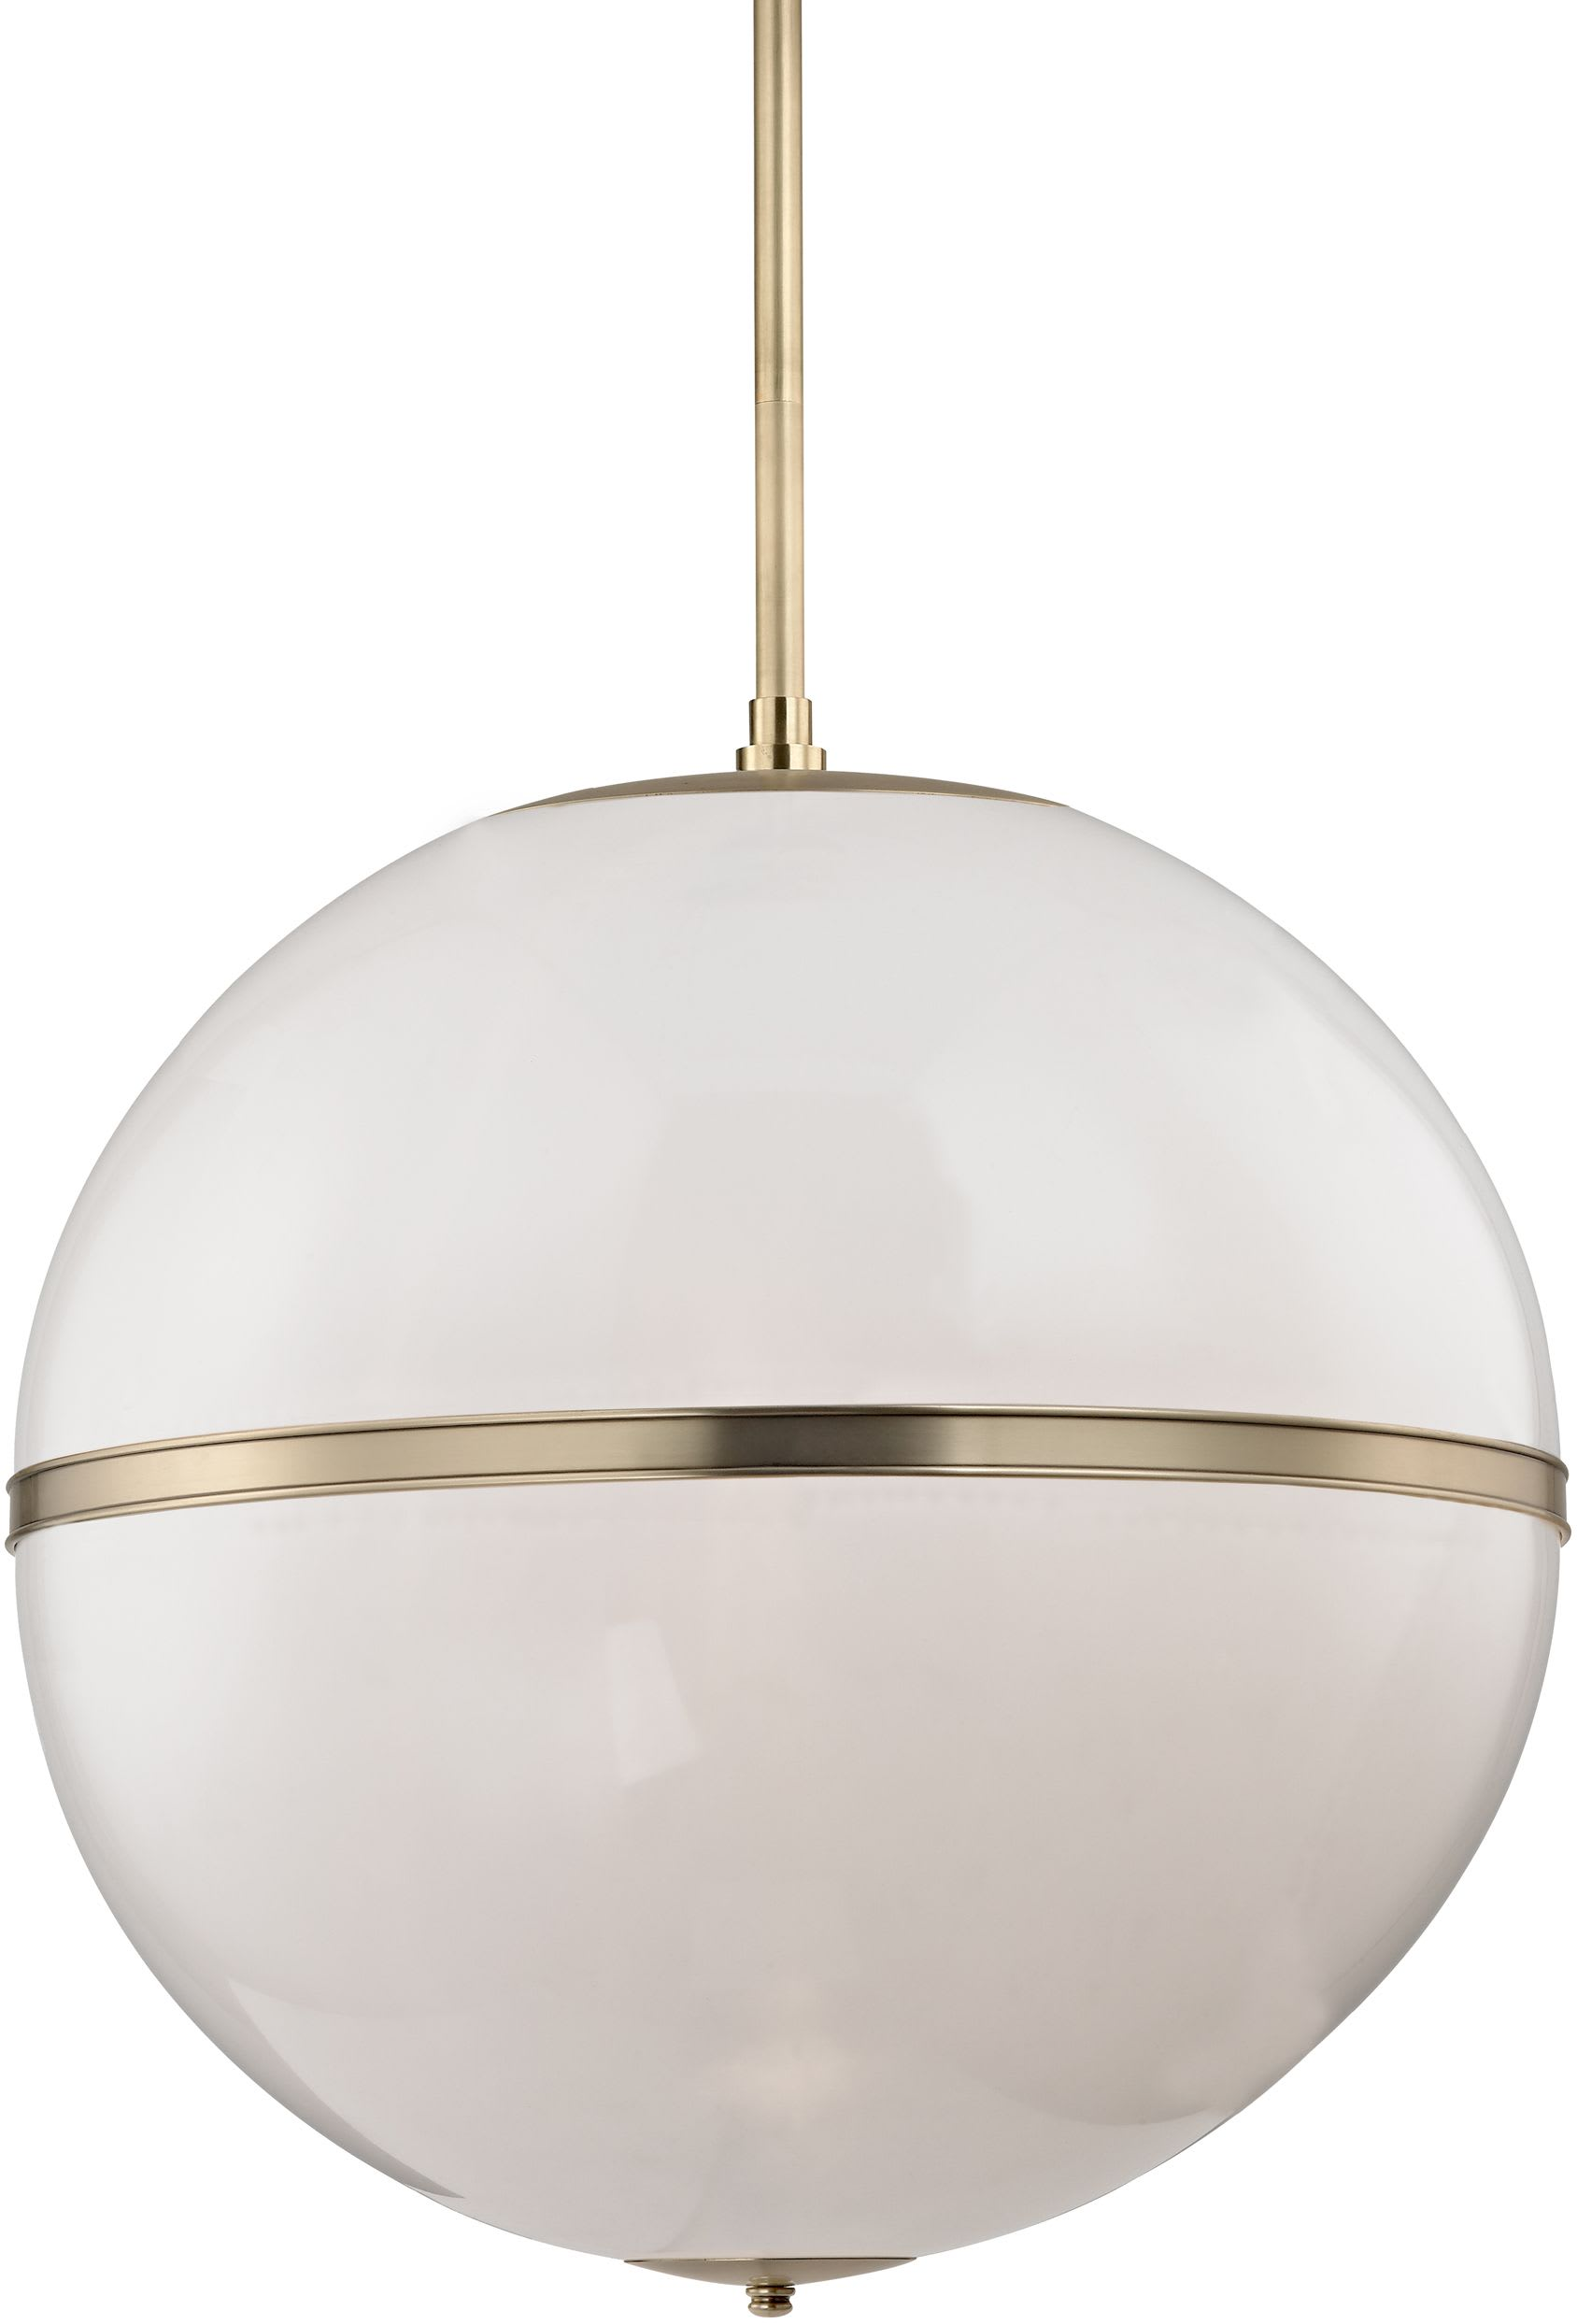 Crystorama Lighting Group 2030 Ag Aged Brass Truax 3 Light 30 Wide Globe Chandelier With White Glass Shade Lightingshowplace Com